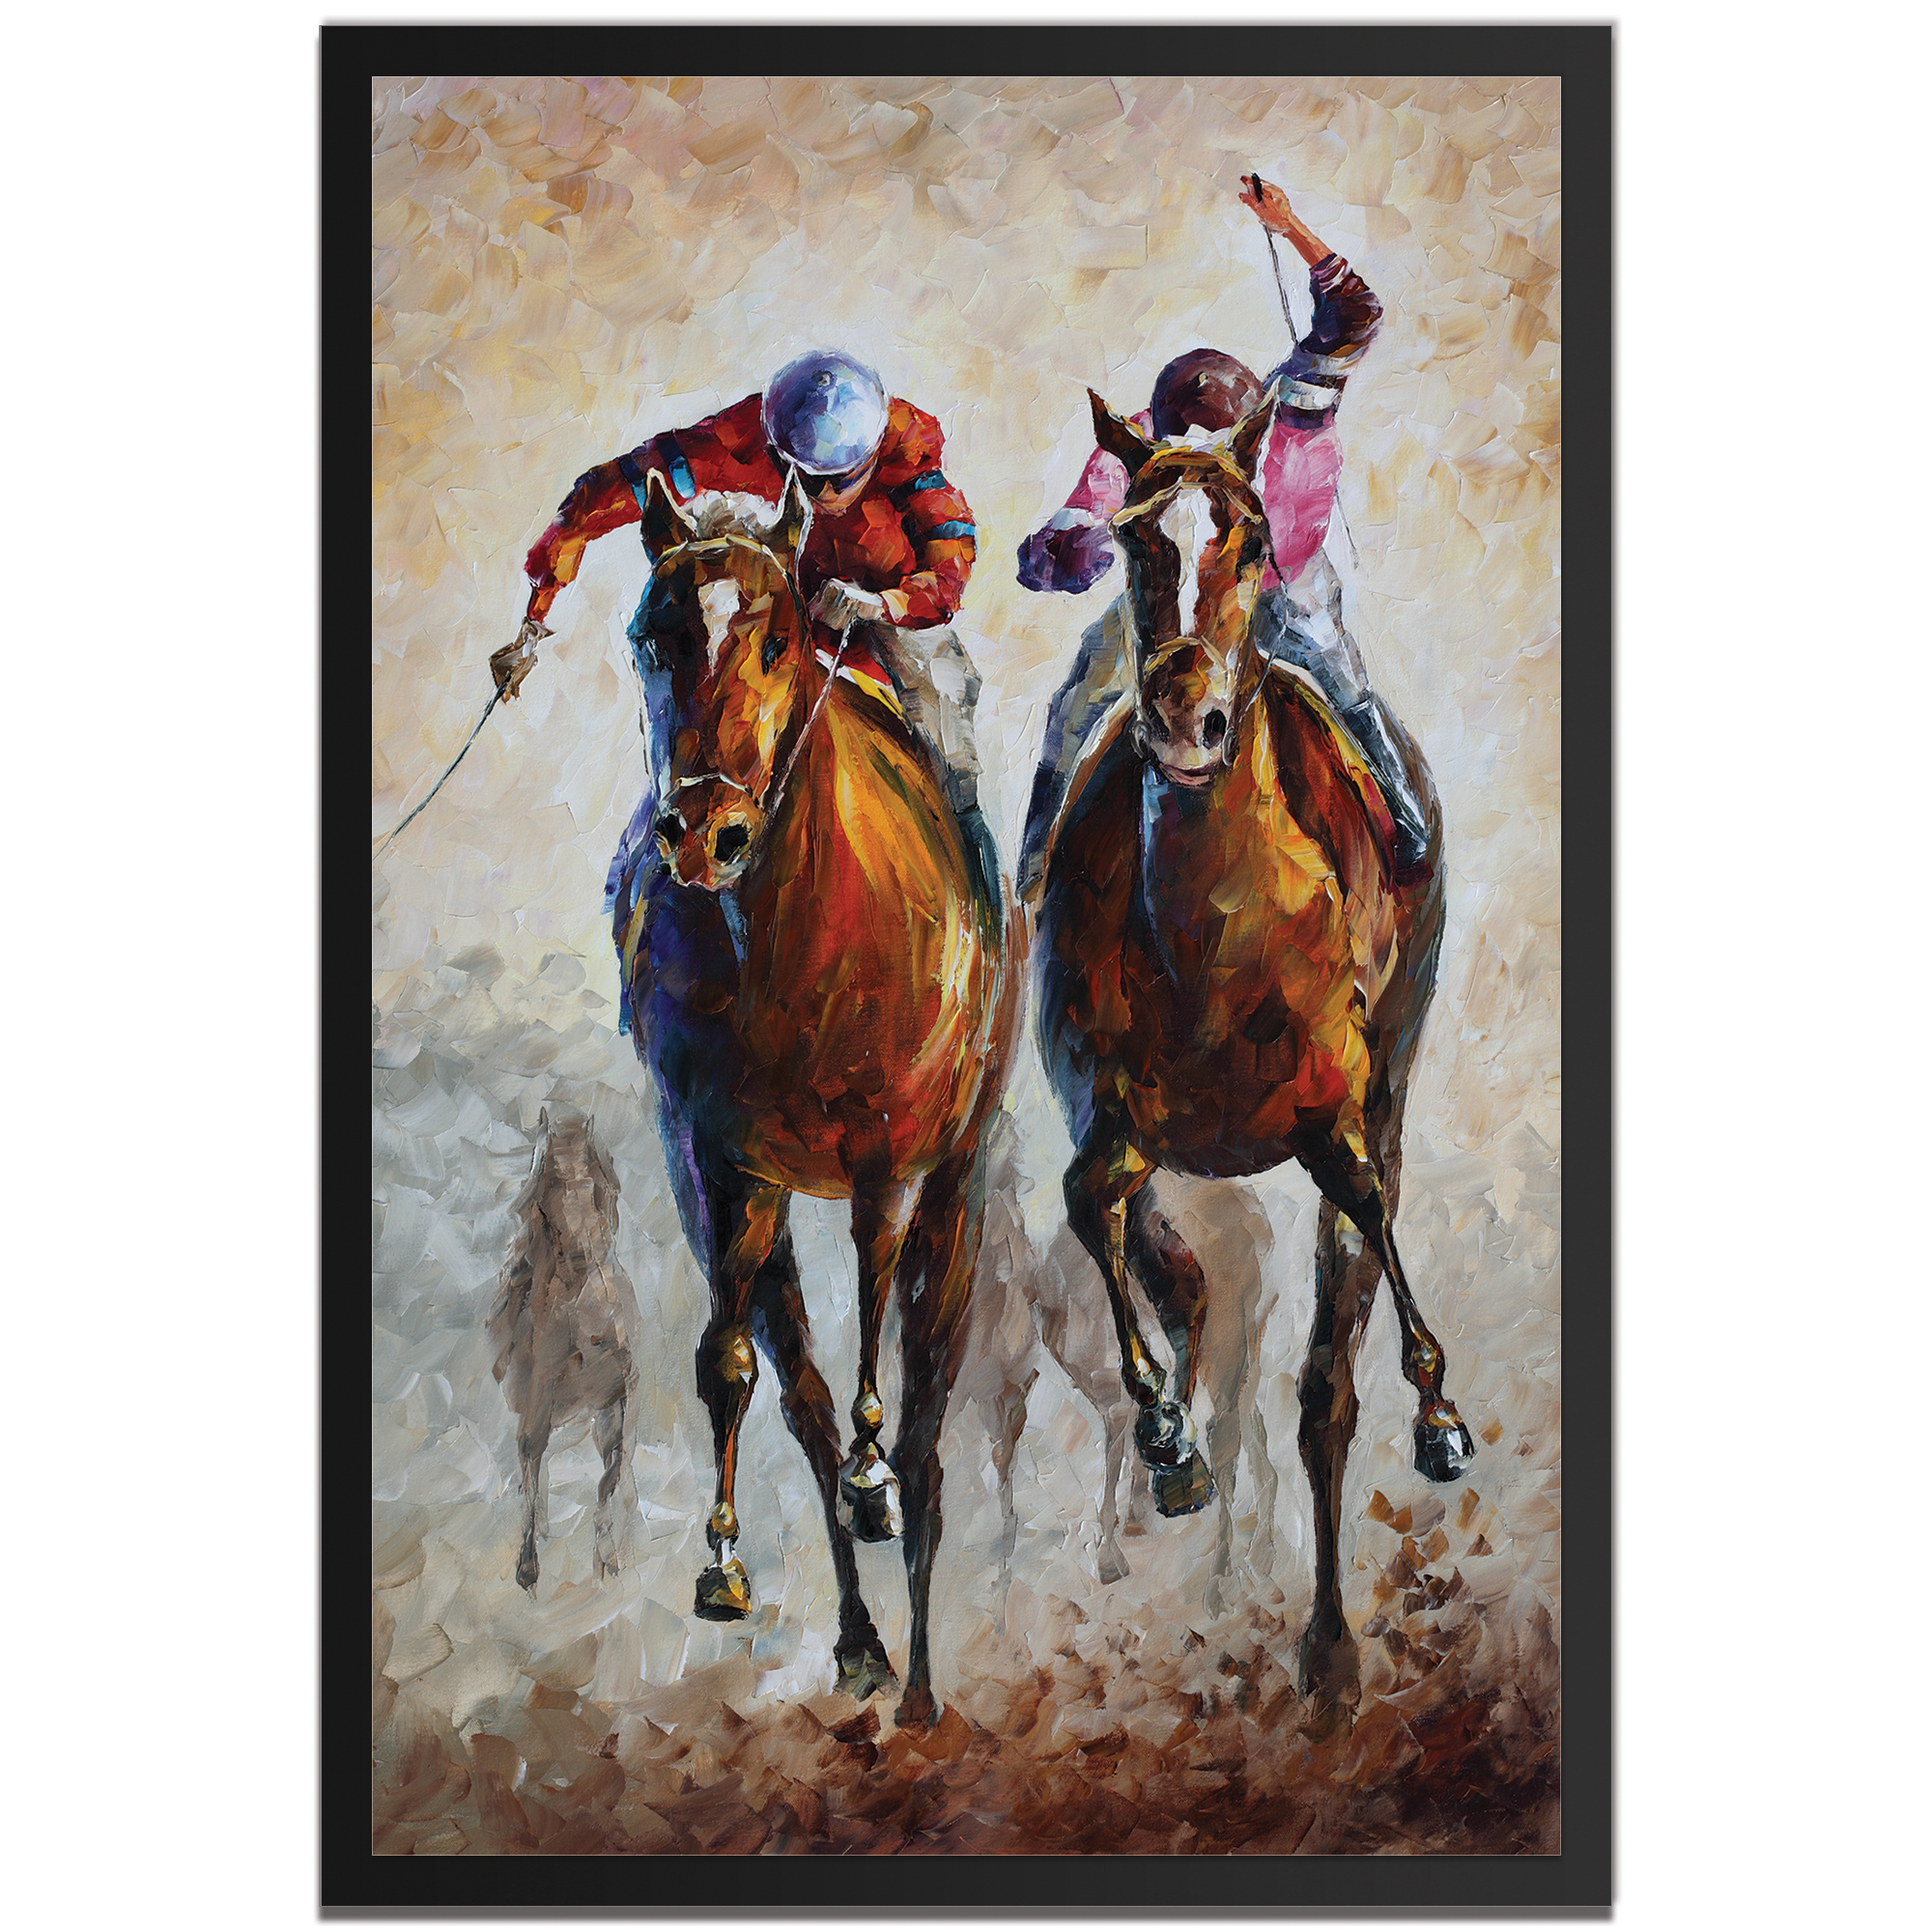 Leonid Afremov 'Contenders Framed' 22in x 32in Traditional Horse Racing Art on Colored Metal